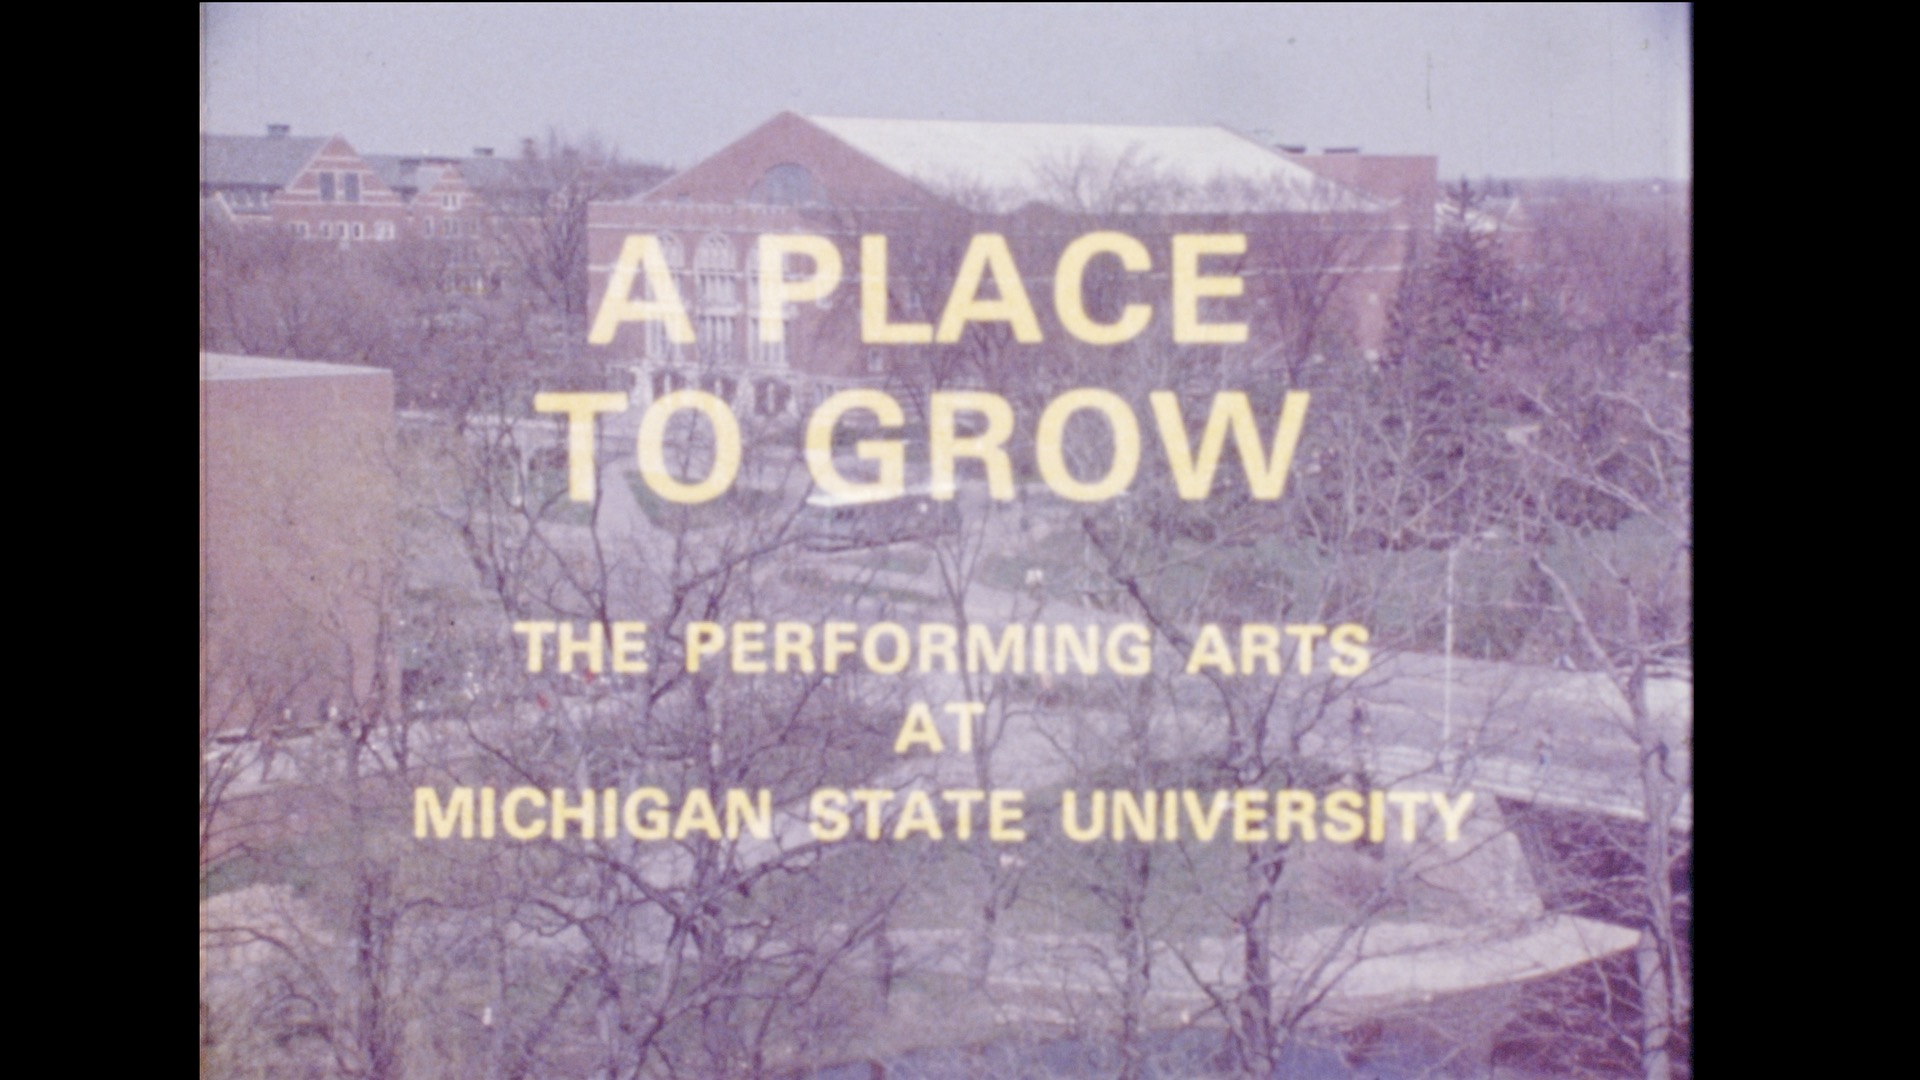 A Place to Grow, 1972